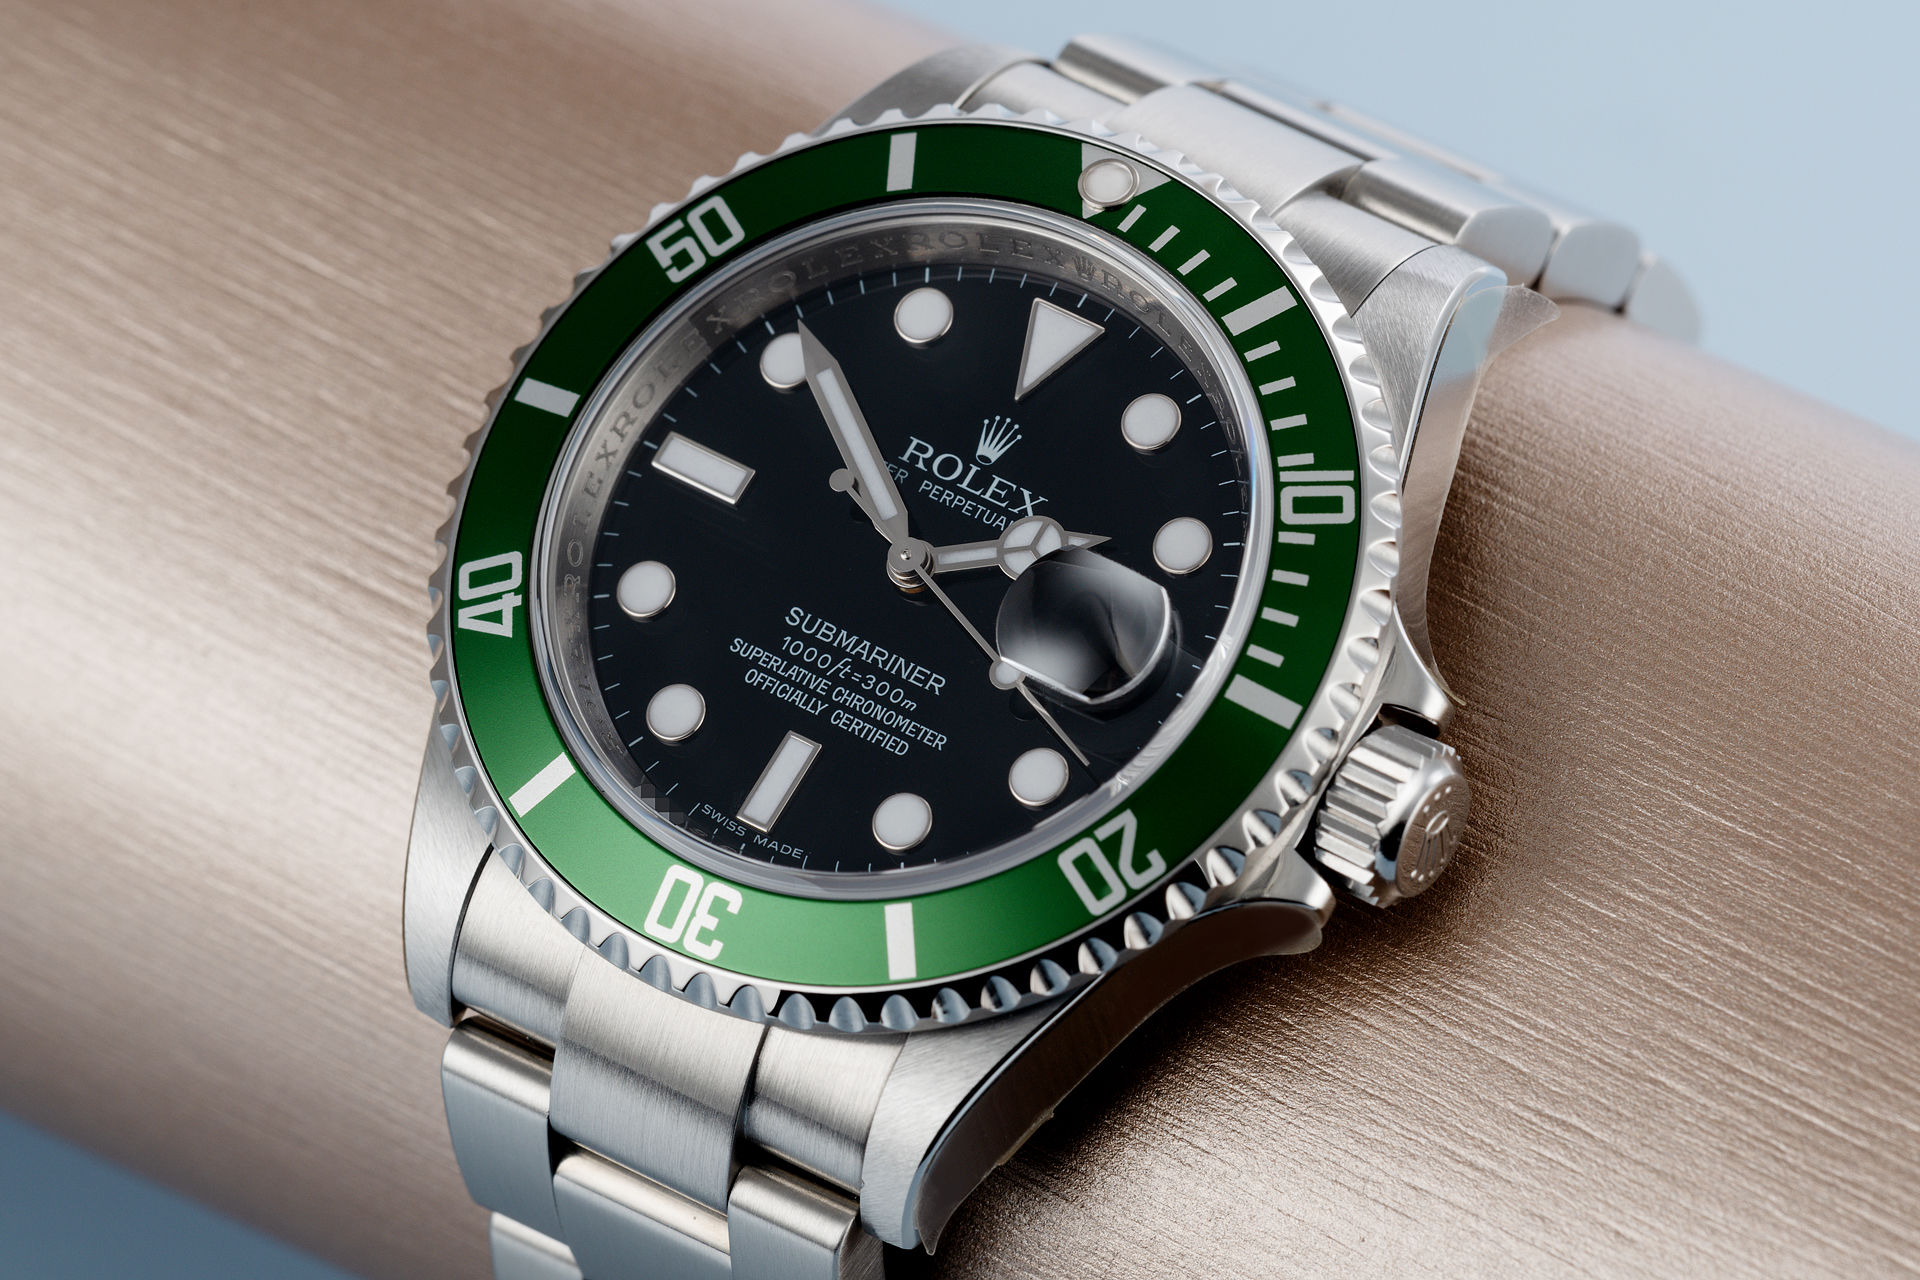 ref 16610LV | Fully Stickered 'Brand New Old Stock' | Rolex Submariner Date